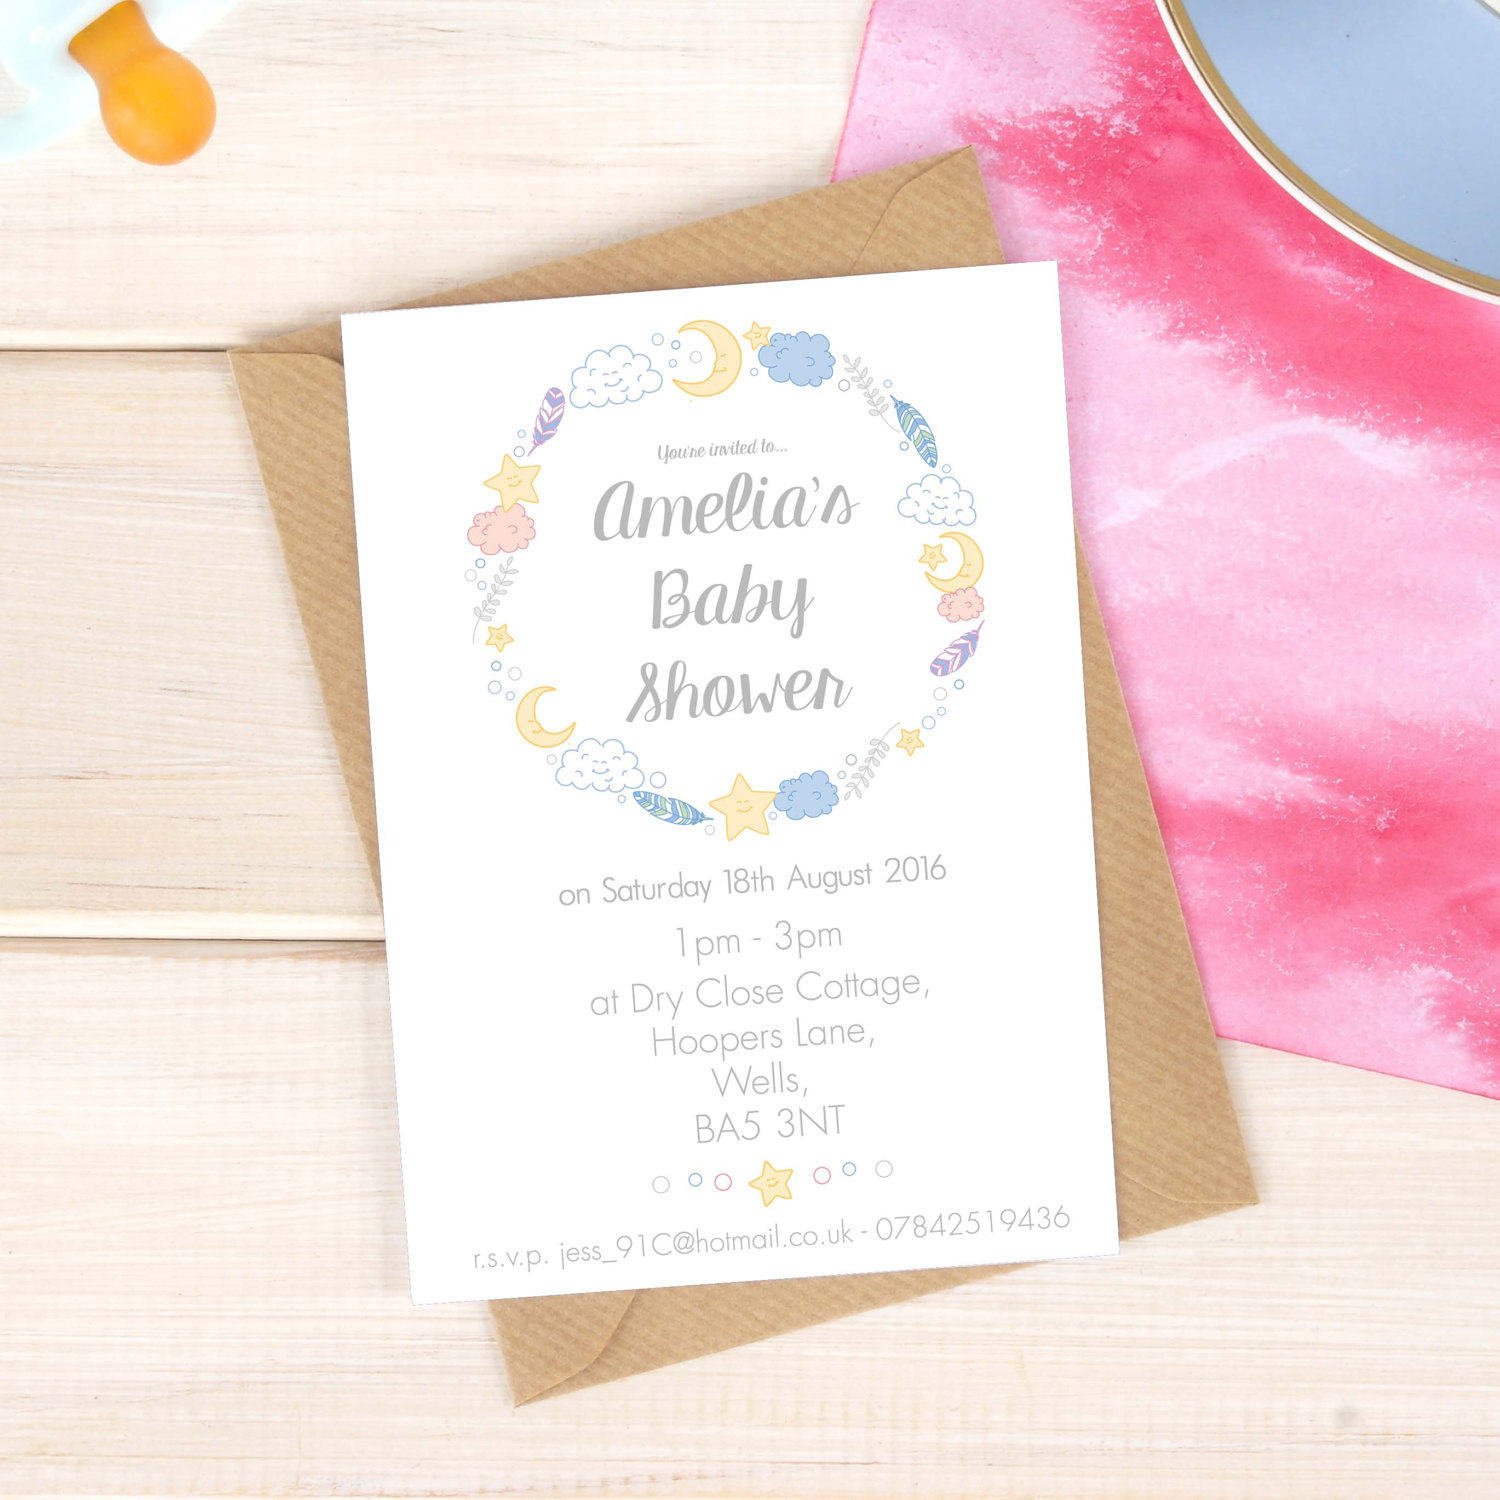 Personalised baby shower invitation pack a6 baby shower invites personalised baby shower invitation pack a6 baby shower invites new baby party invites pregnancy announcement invitations baby boy filmwisefo